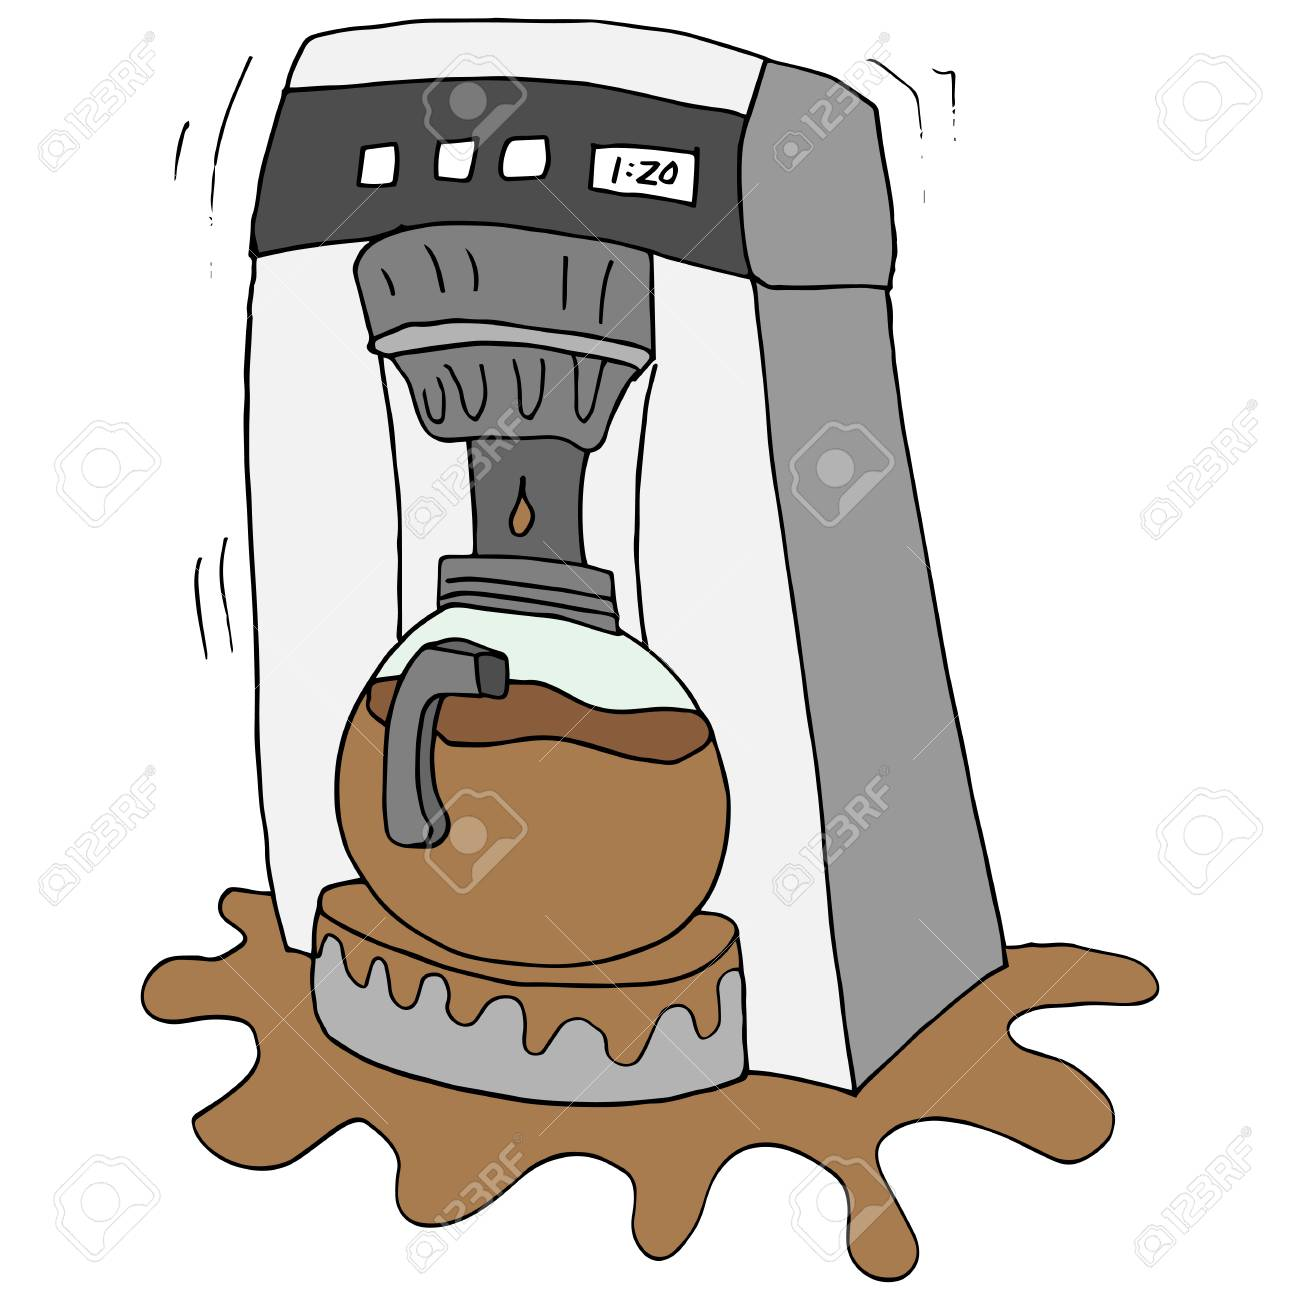 An Image Of A Broken Coffee Maker Royalty Free Cliparts Vectors